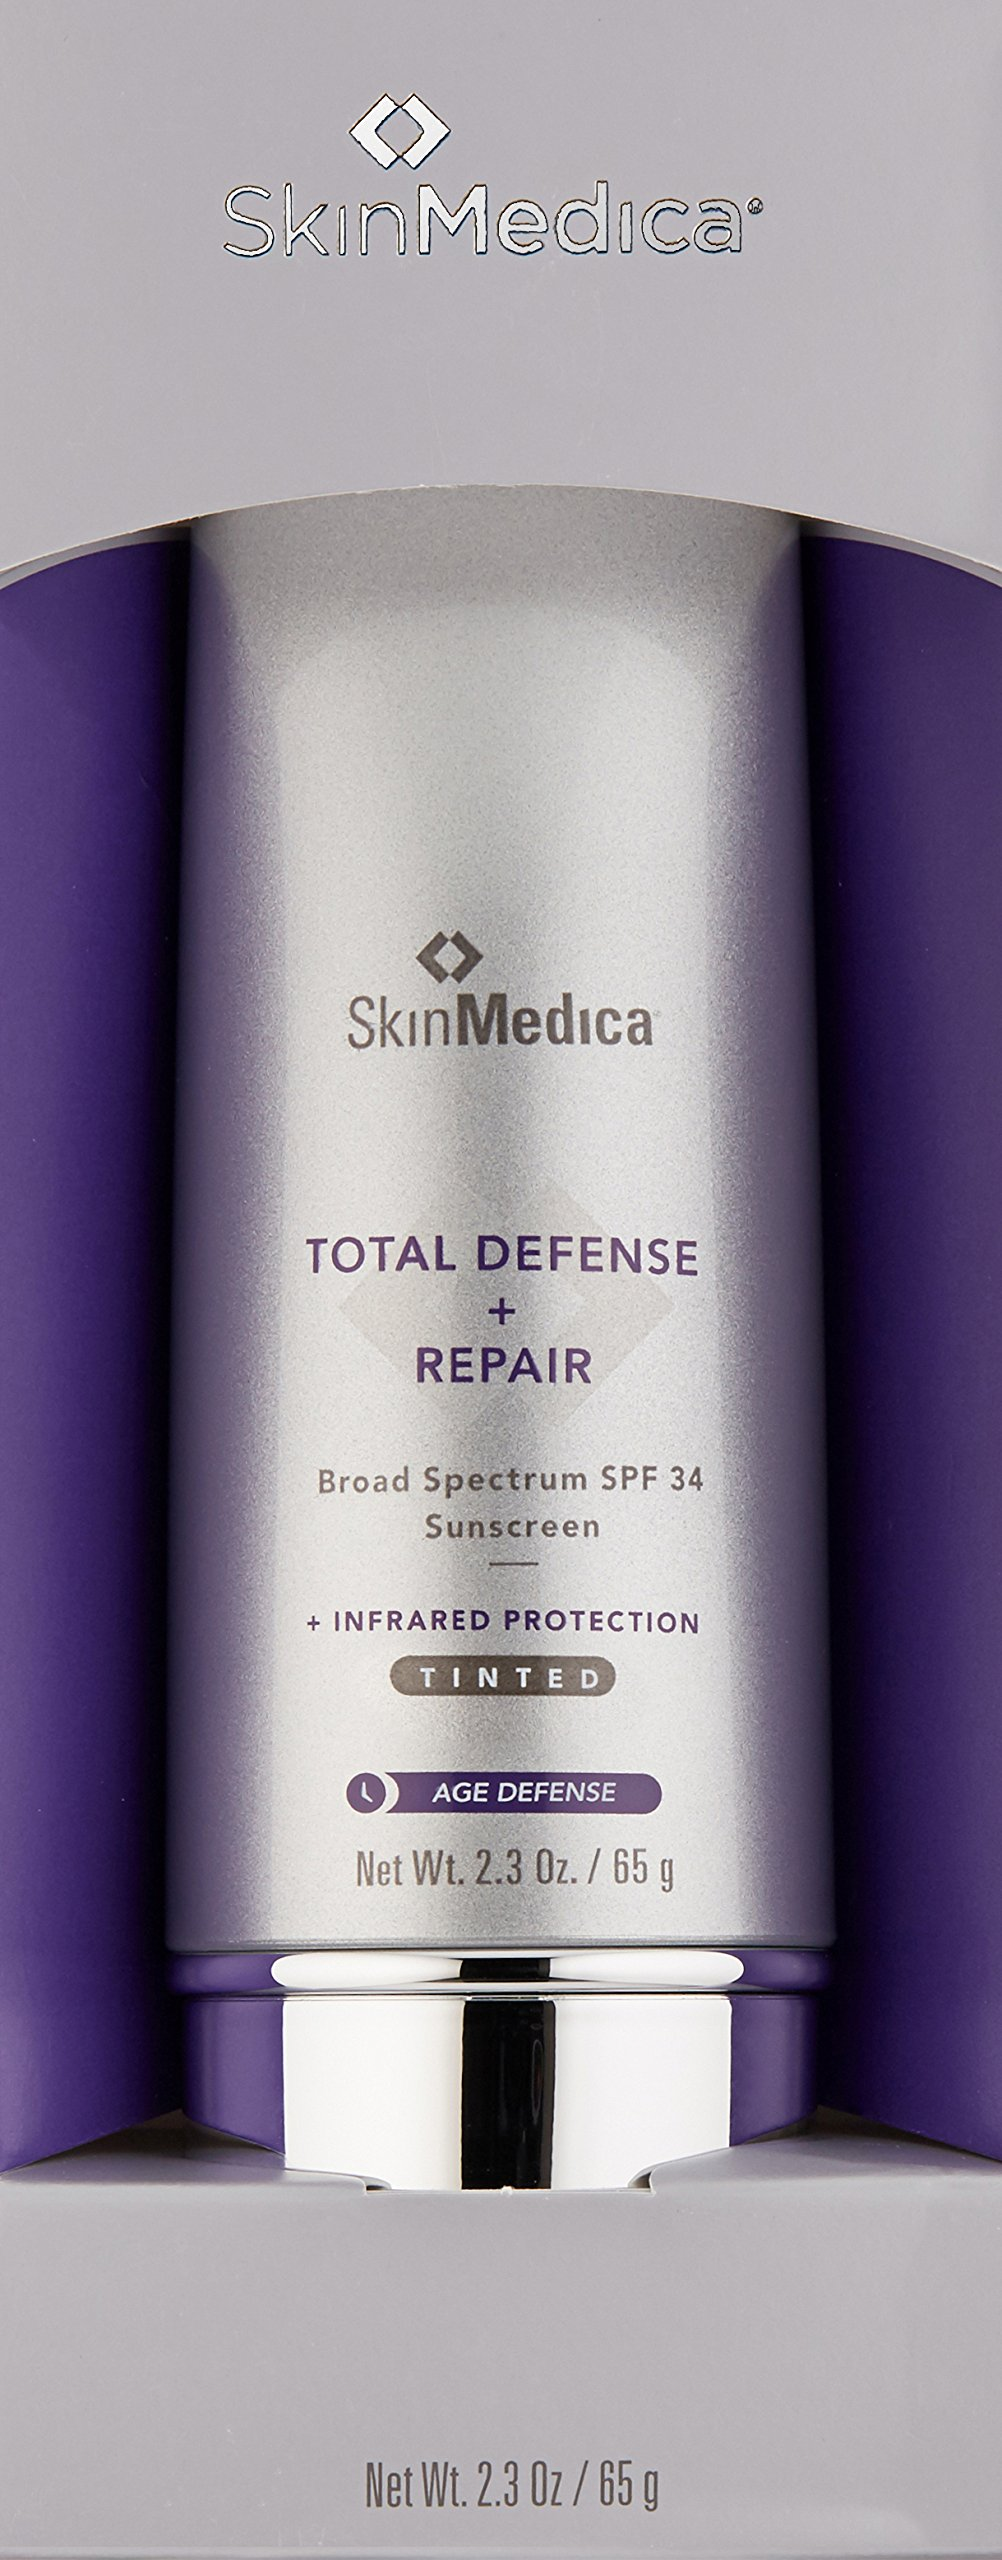 SkinMedica Total Defense Plus Repair SPF 34 Sunscreen Tinted, 2.3 oz. by SkinMedica (Image #3)